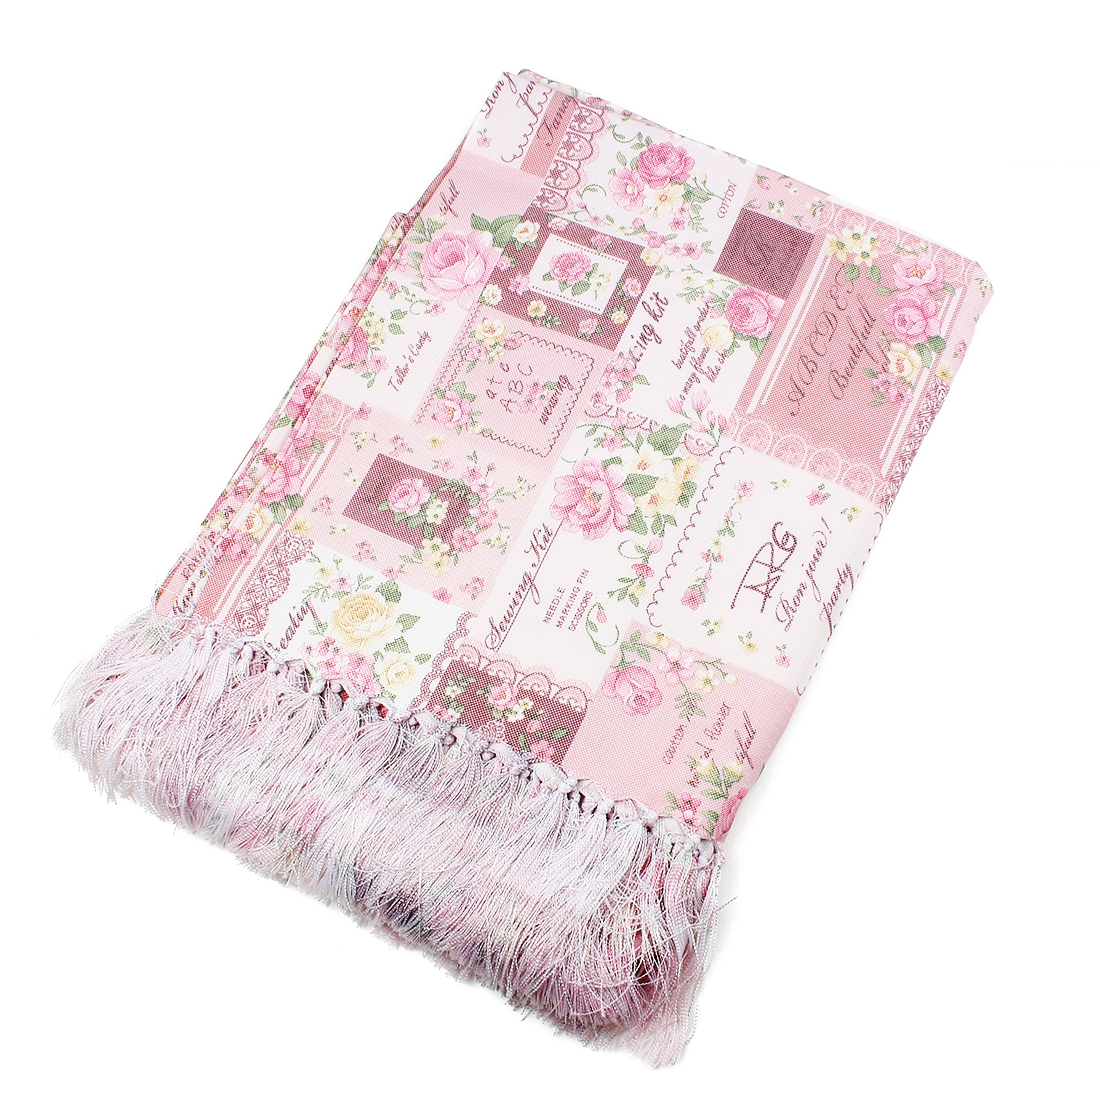 Floral Pattern Rectangle Tablecloth 135 x 220cm Pink